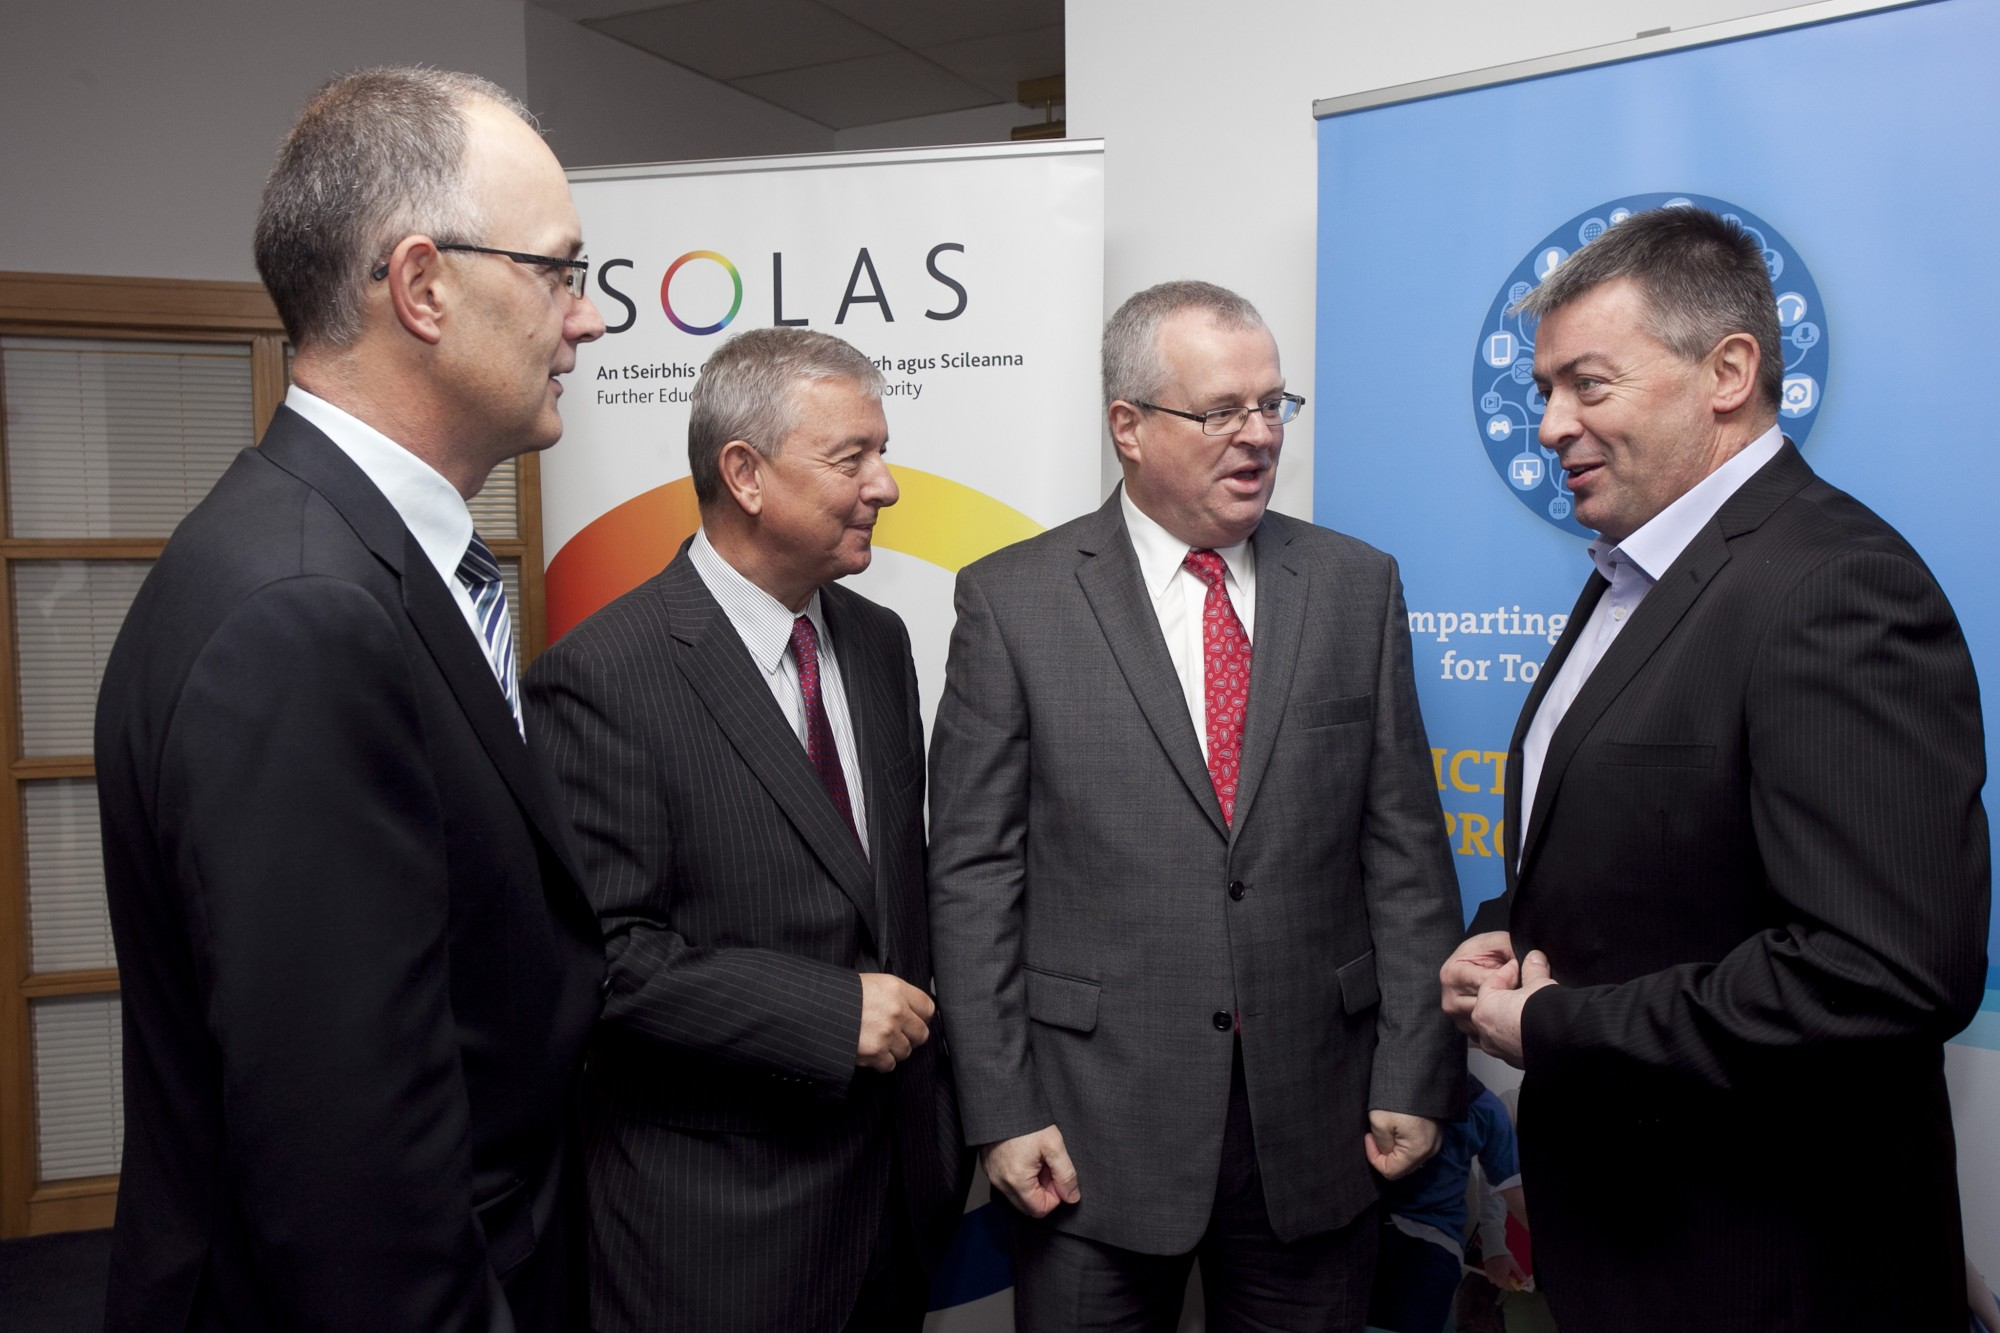 Pictured at the launch event were Mr. Liam Ryan, FIT Board Member and Managing Director of SAP Ireland; Peter O'Neill, Managing Director, IBM Ireland; Paul O'Toole, CEO, SOLAS; Peter Davitt, CEO, FIT